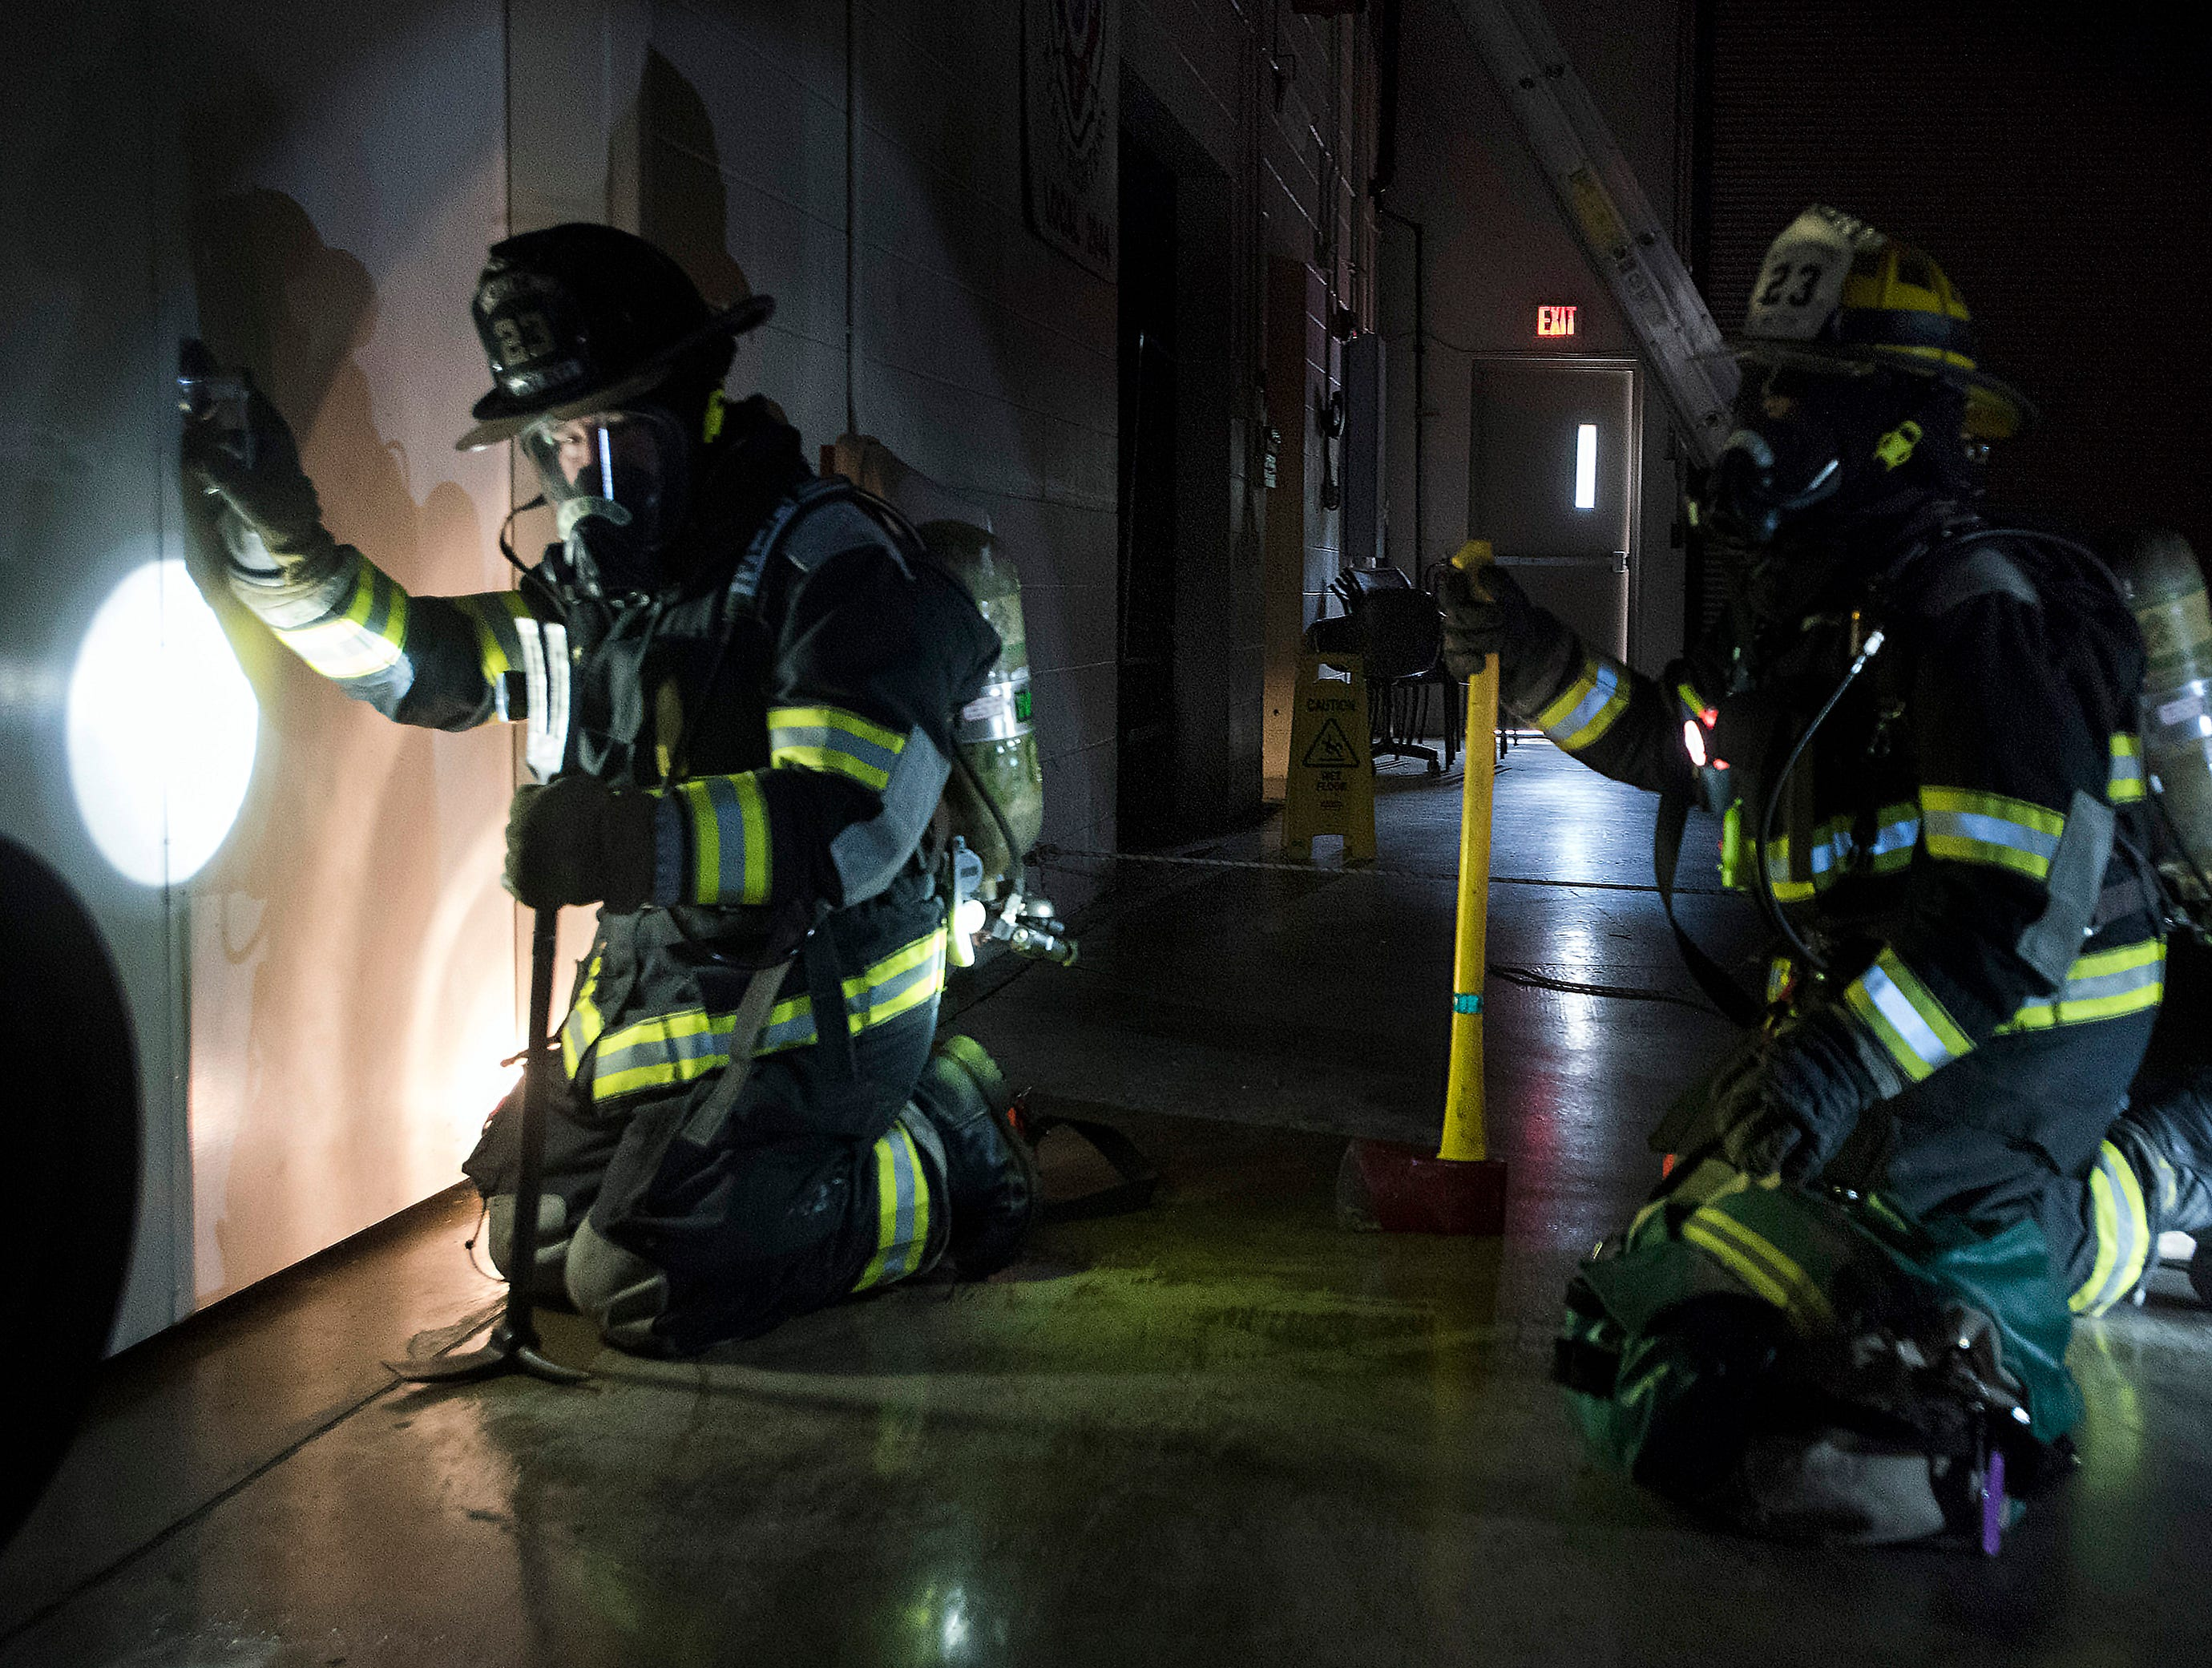 Milton Firefighters Peyton Blackledge and Steve Maddox train for survivor rescue operation at the Stewart Street fire station on Thursday, Feb. 7, 2019. The Milton FD released its annual report this week and said their calls for service increased exponentially last year.